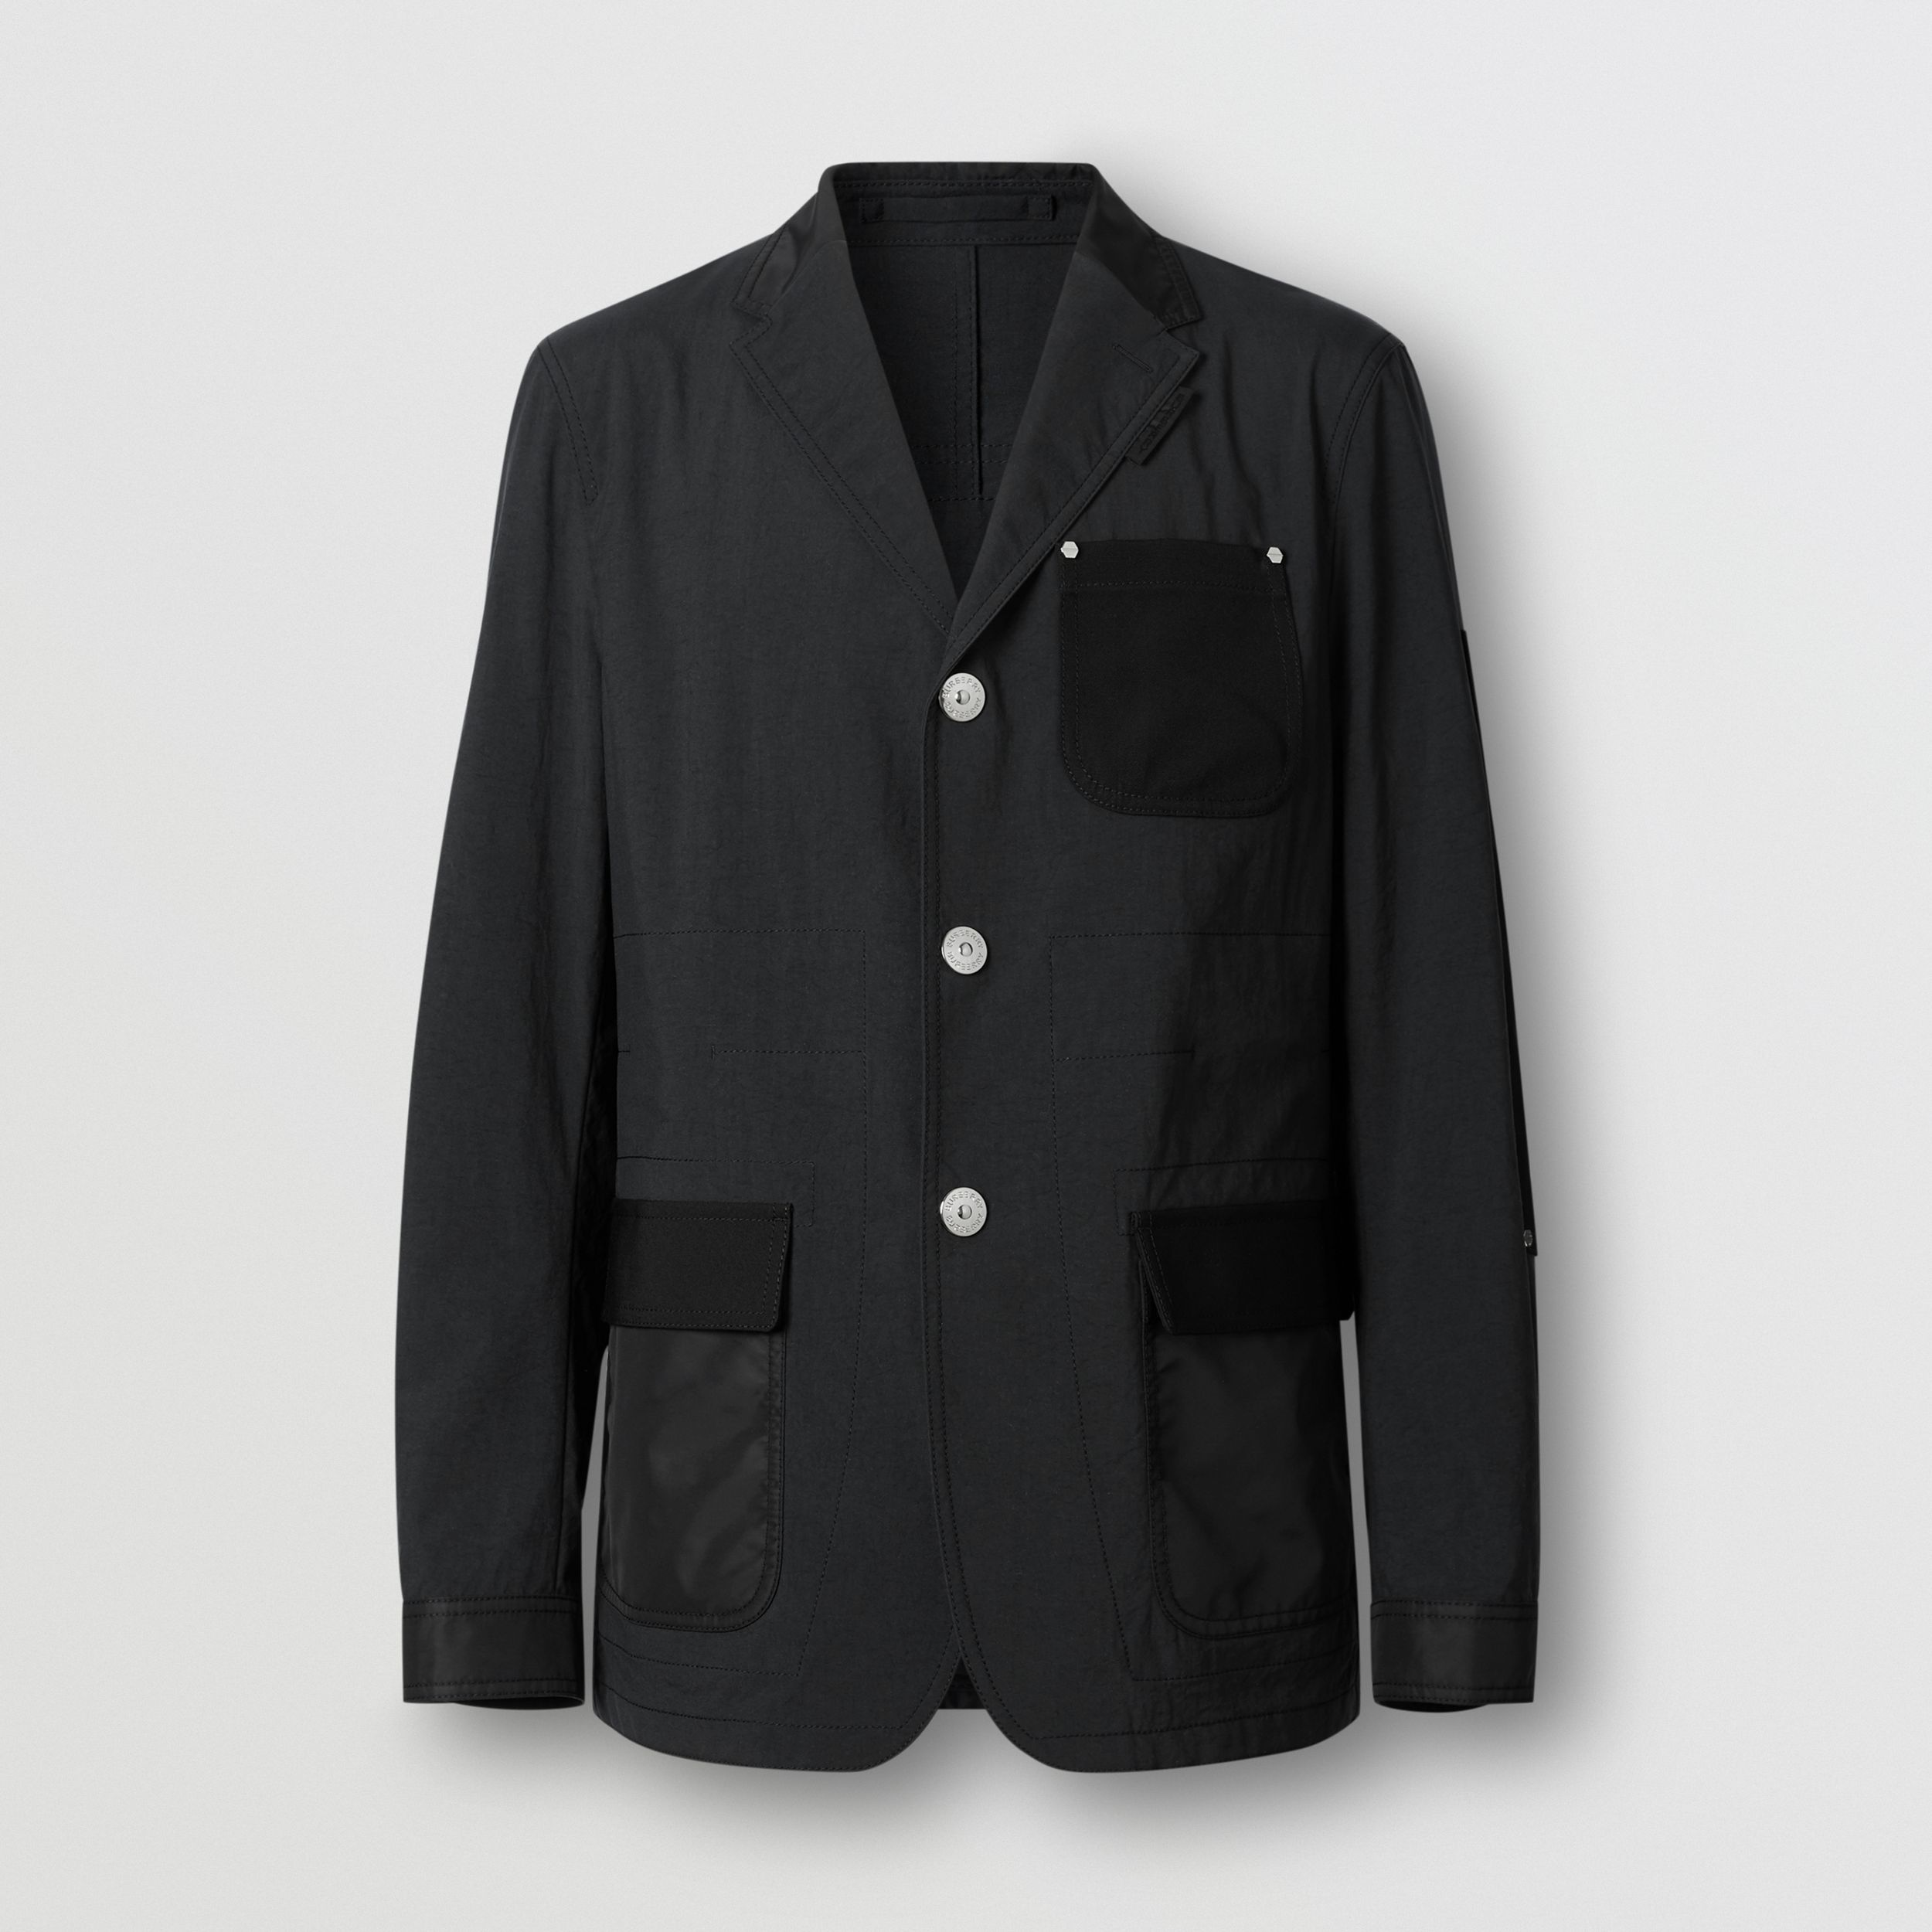 Slim Fit Panelled Nylon and Wool Tailored Jacket in Black - Men | Burberry Singapore - 4